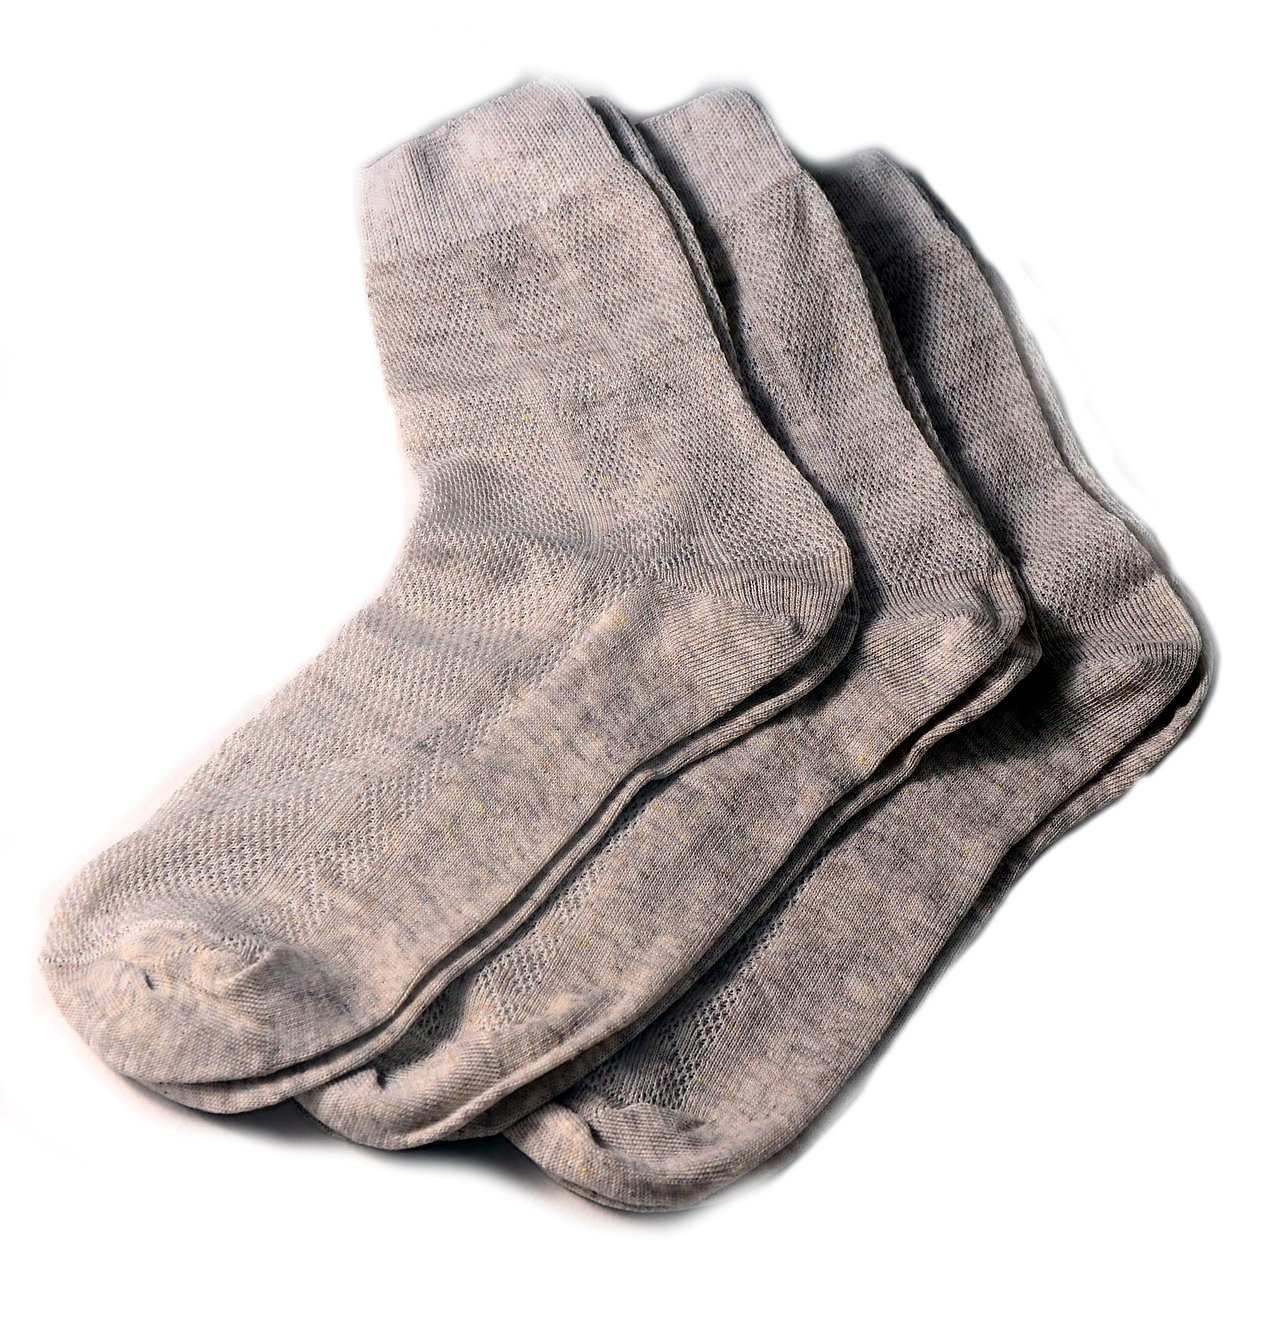 Men's Thin Breathable Mesh-knitted Linen Socks